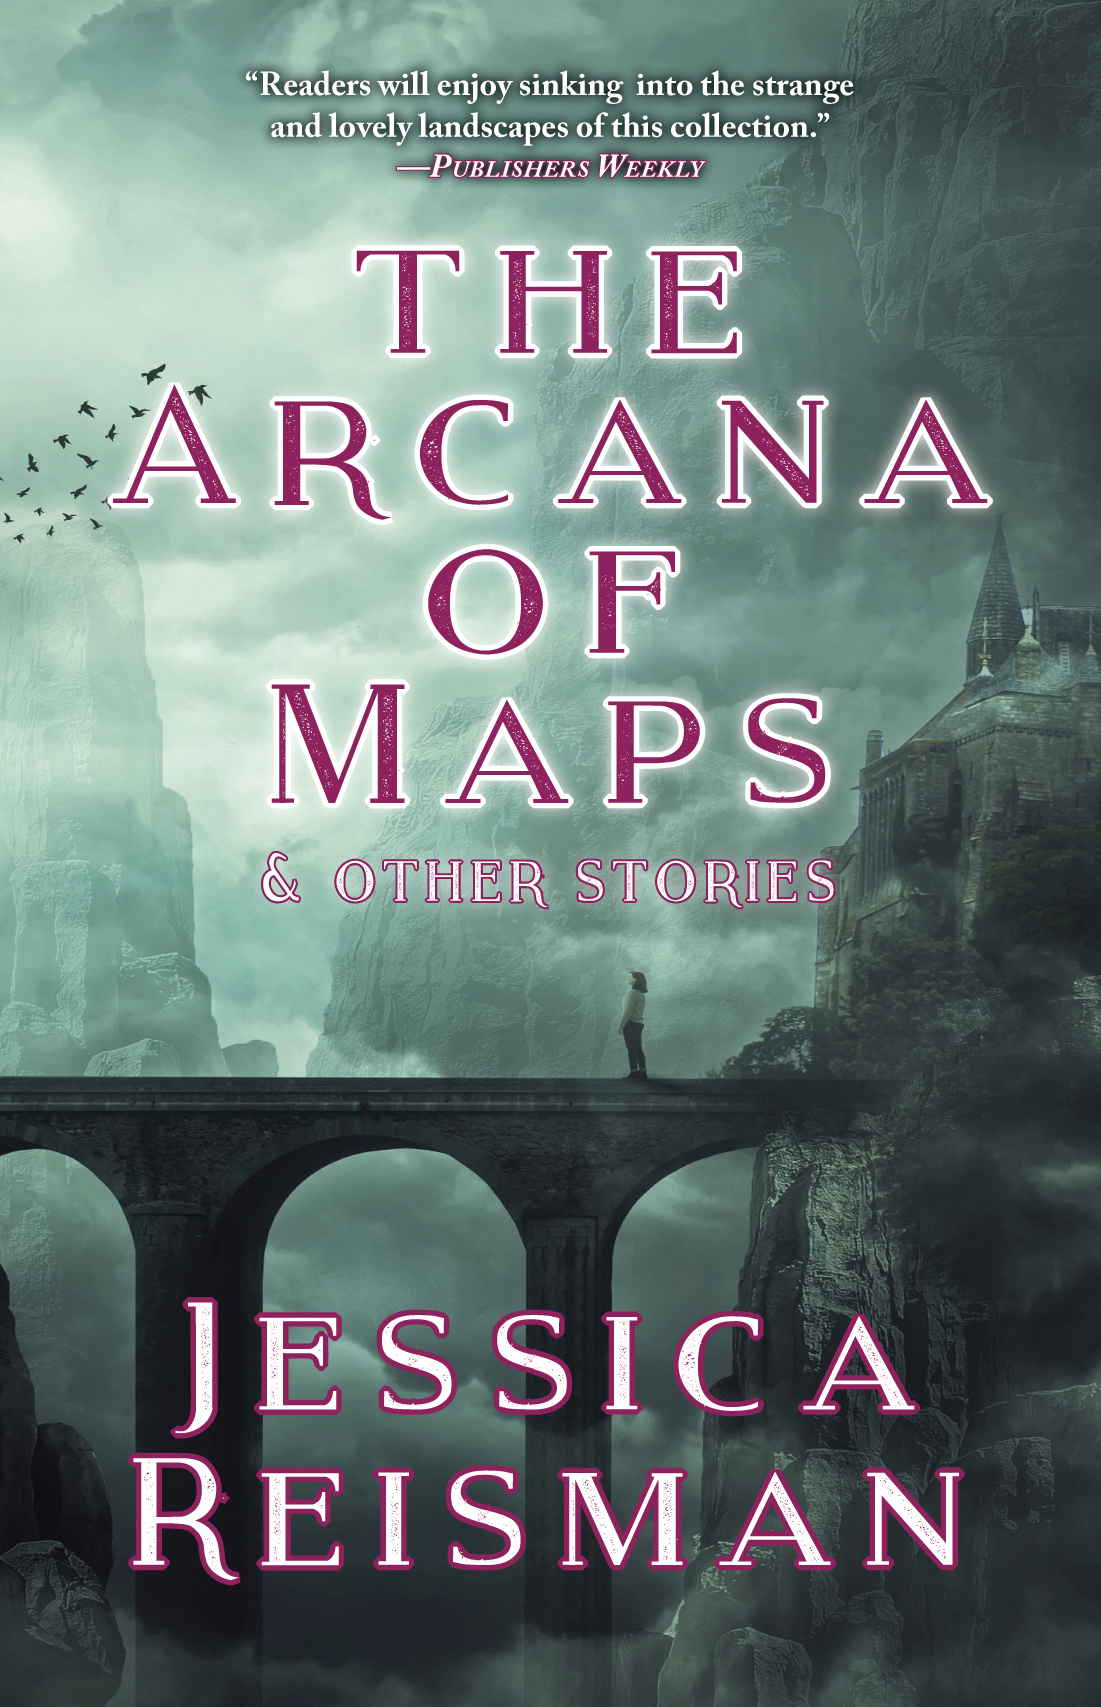 9781933846910_The Arcana of Maps_cover_rev1  B.indd